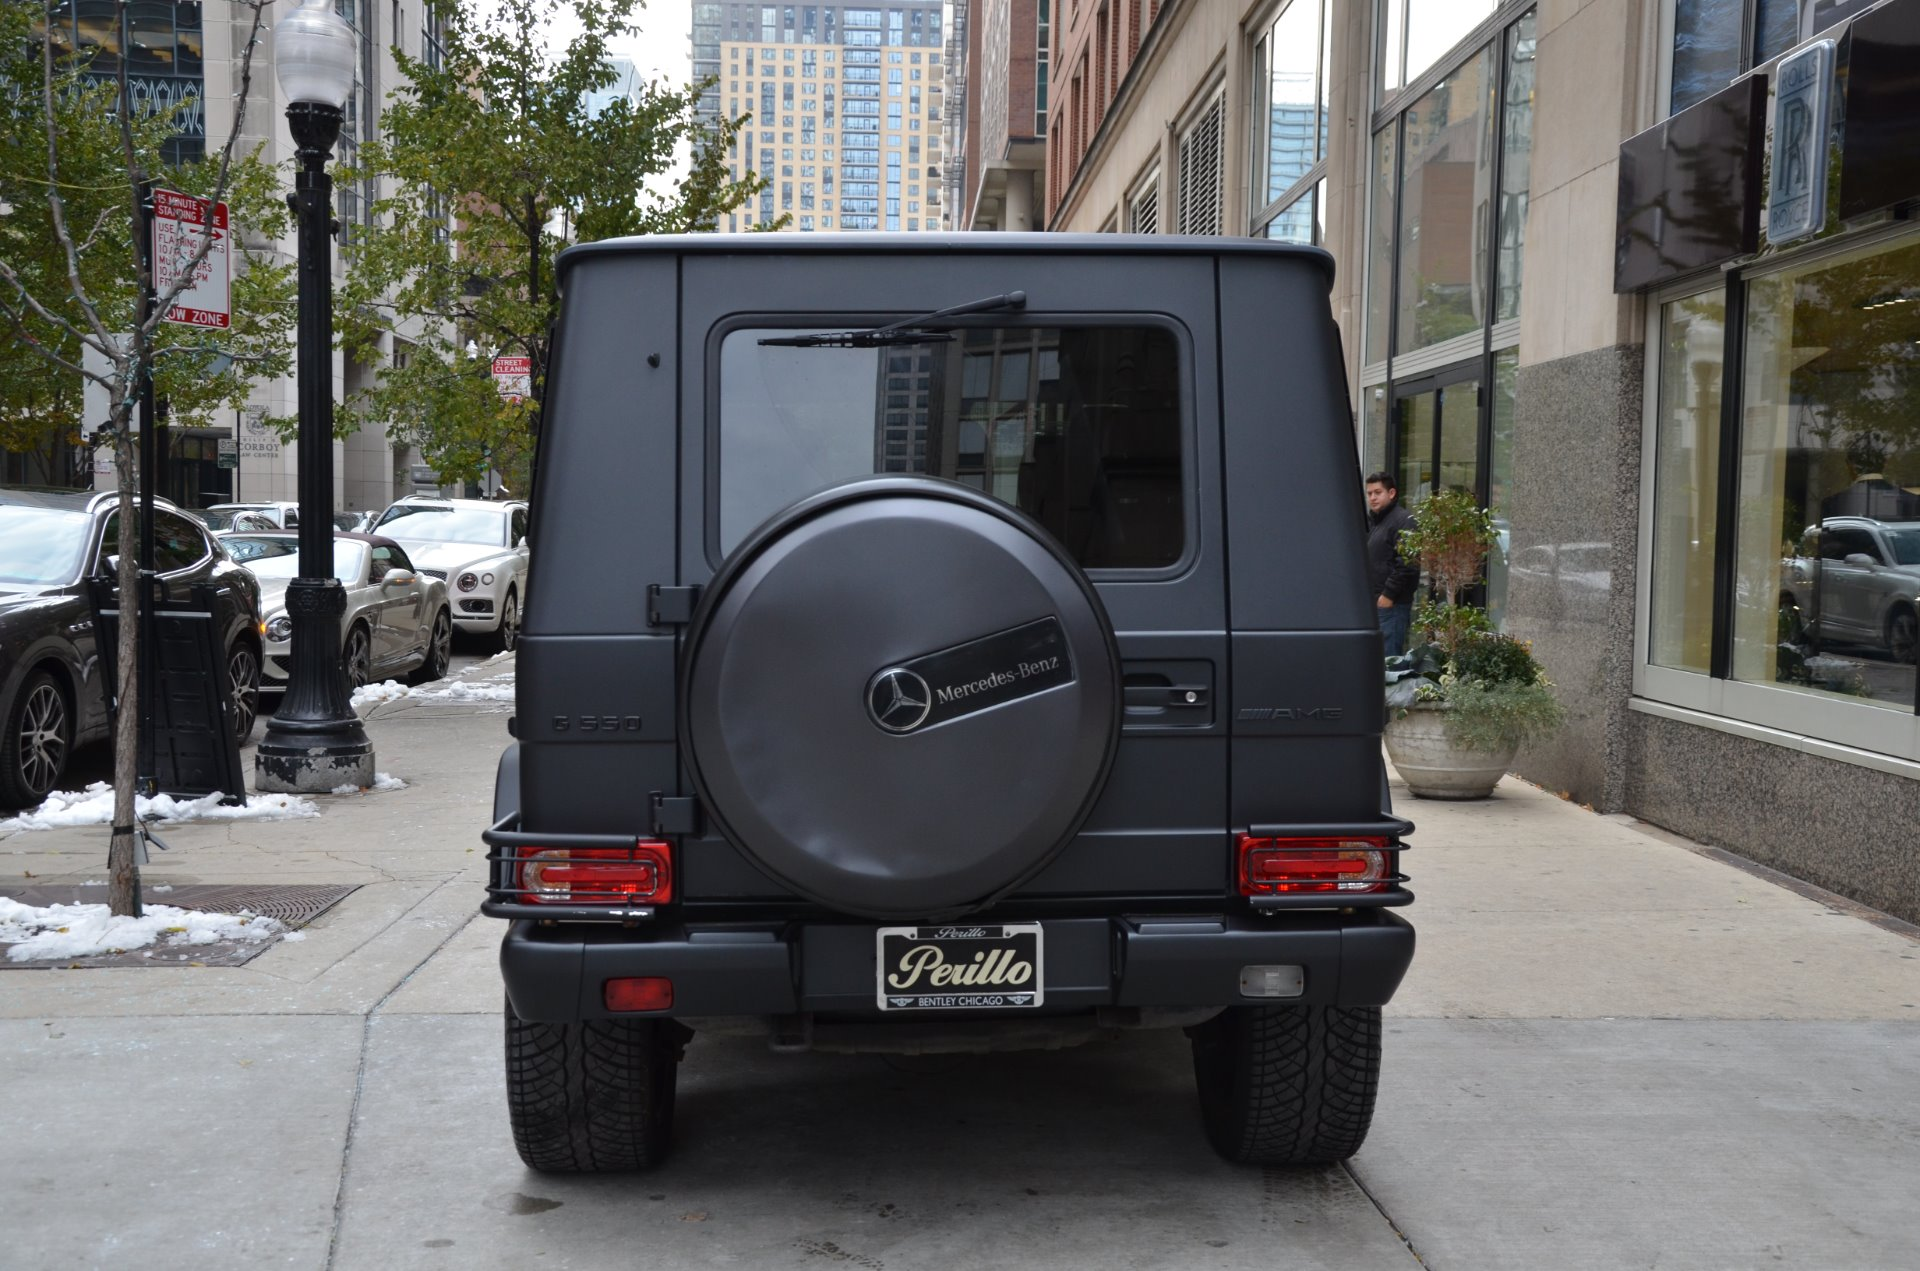 Used 2002 mercedes benz g class g 500 chicago il